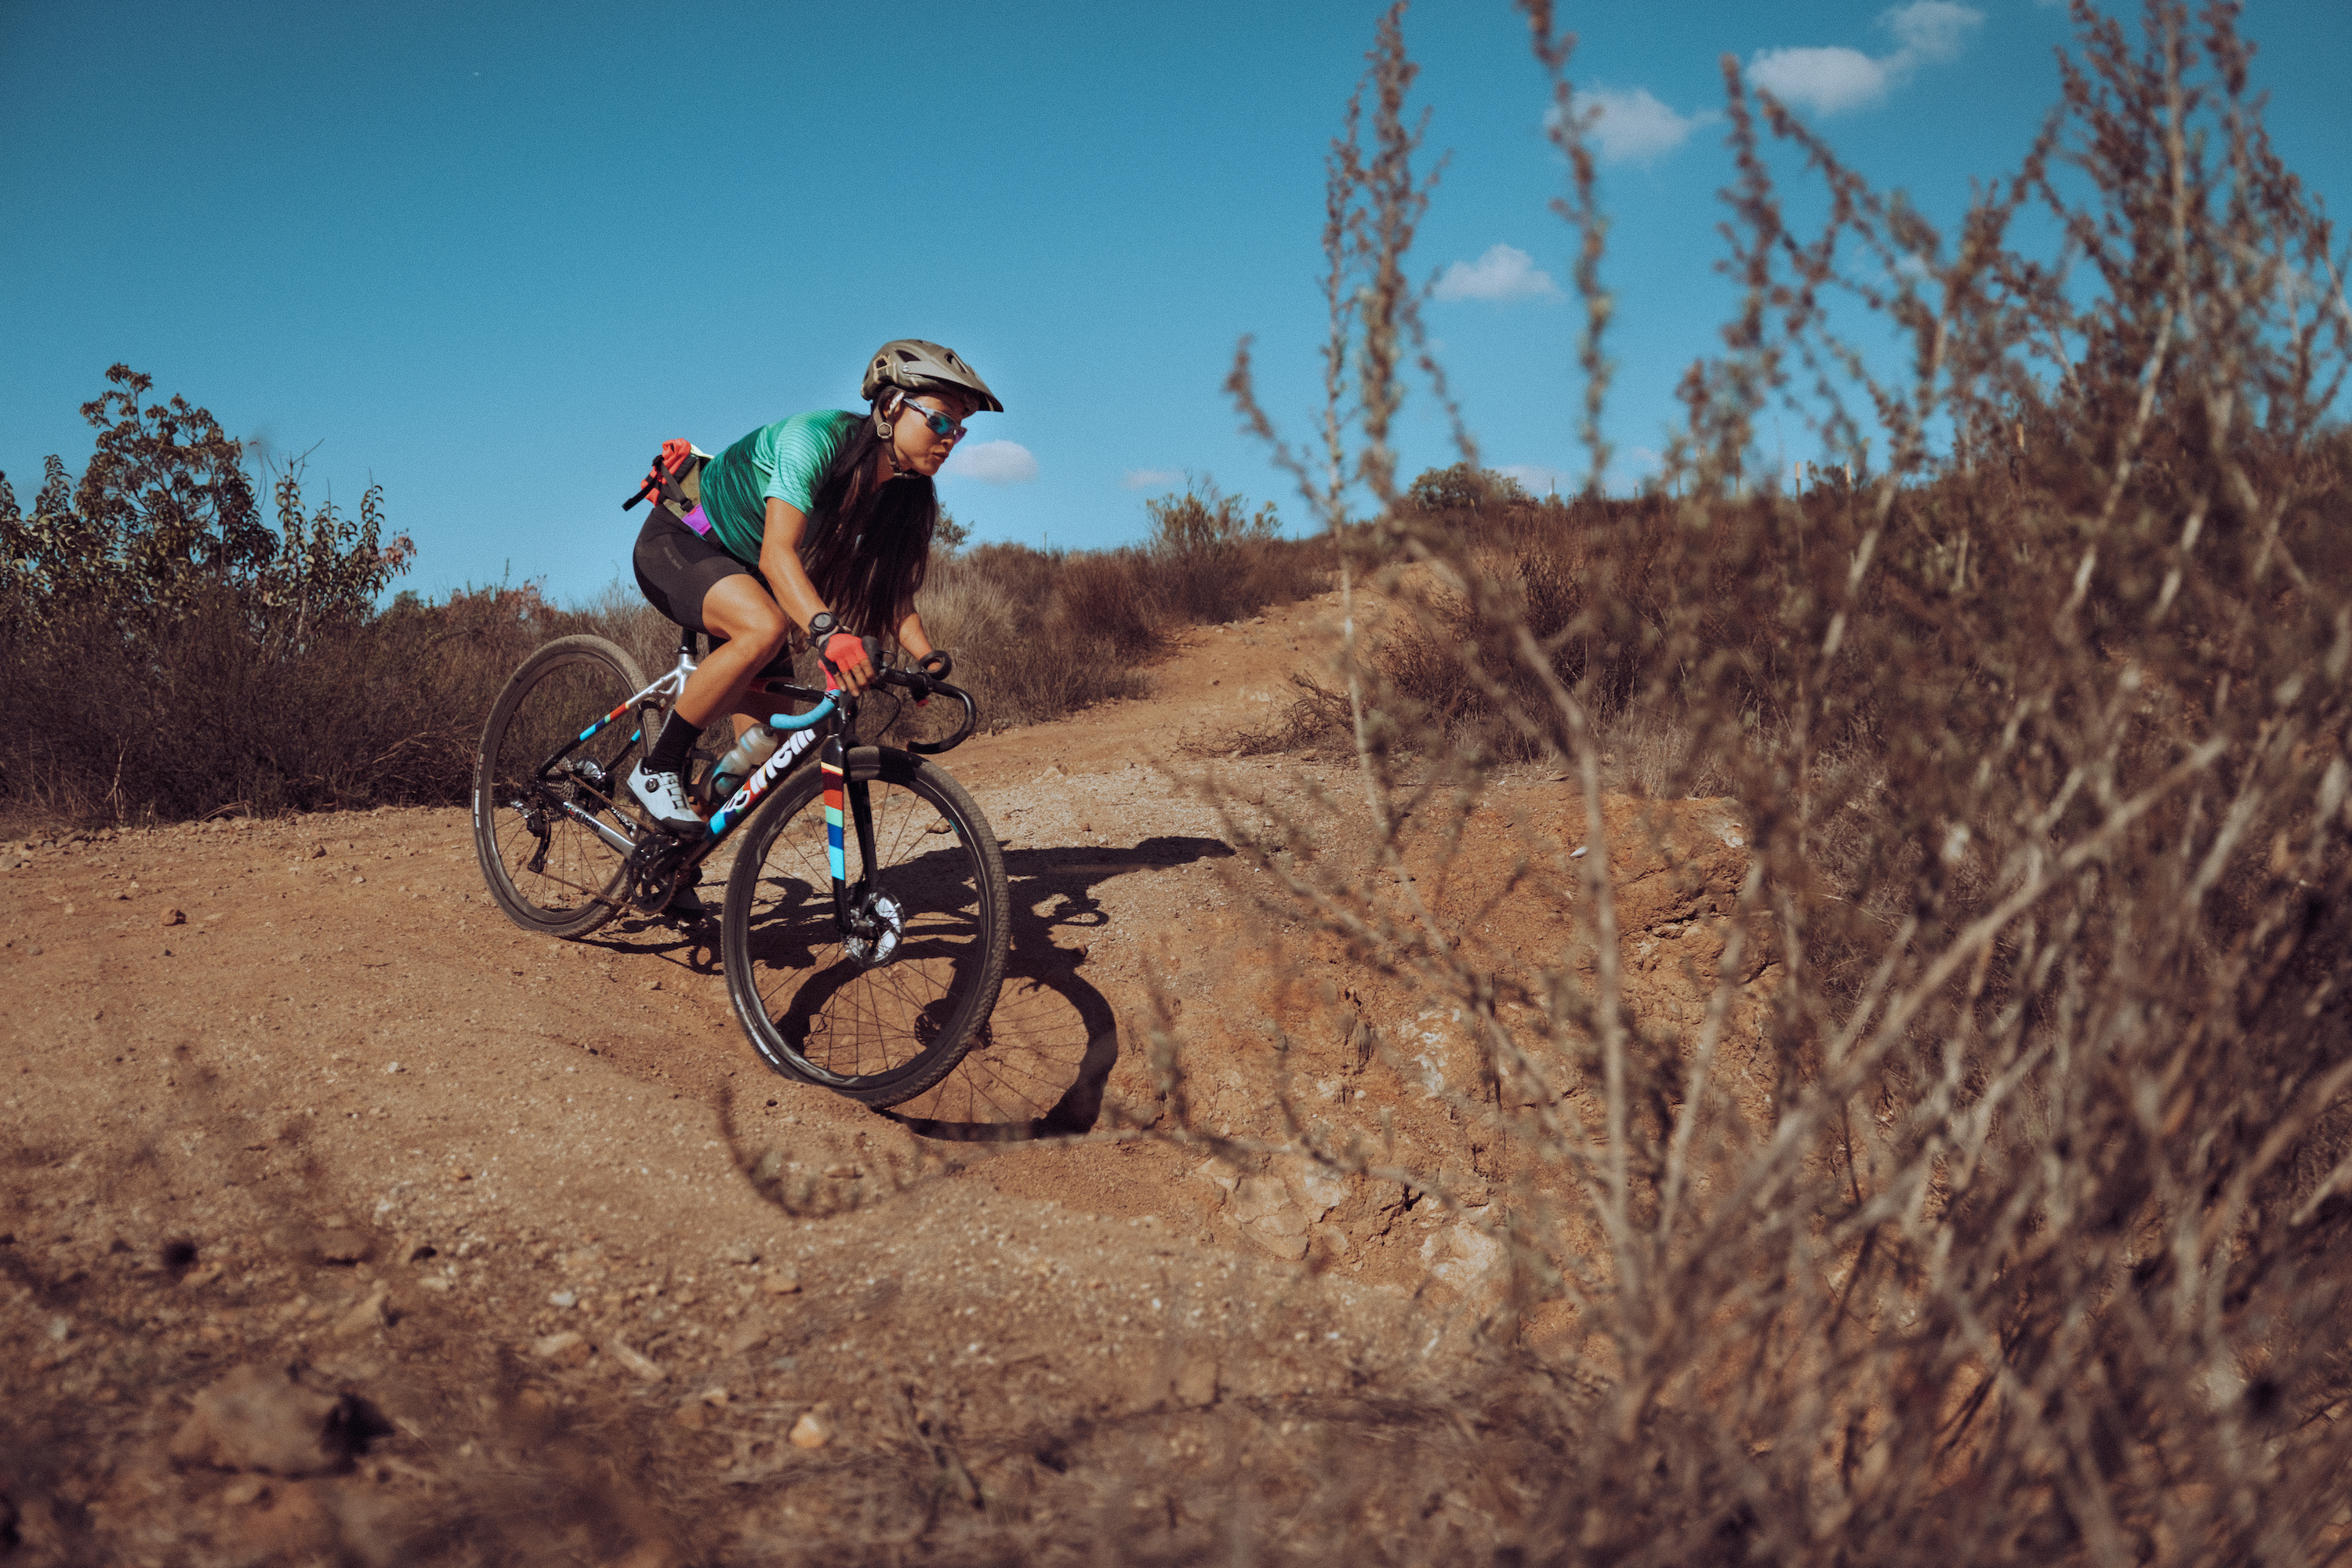 Josie Fouts mountain biking on dirt course